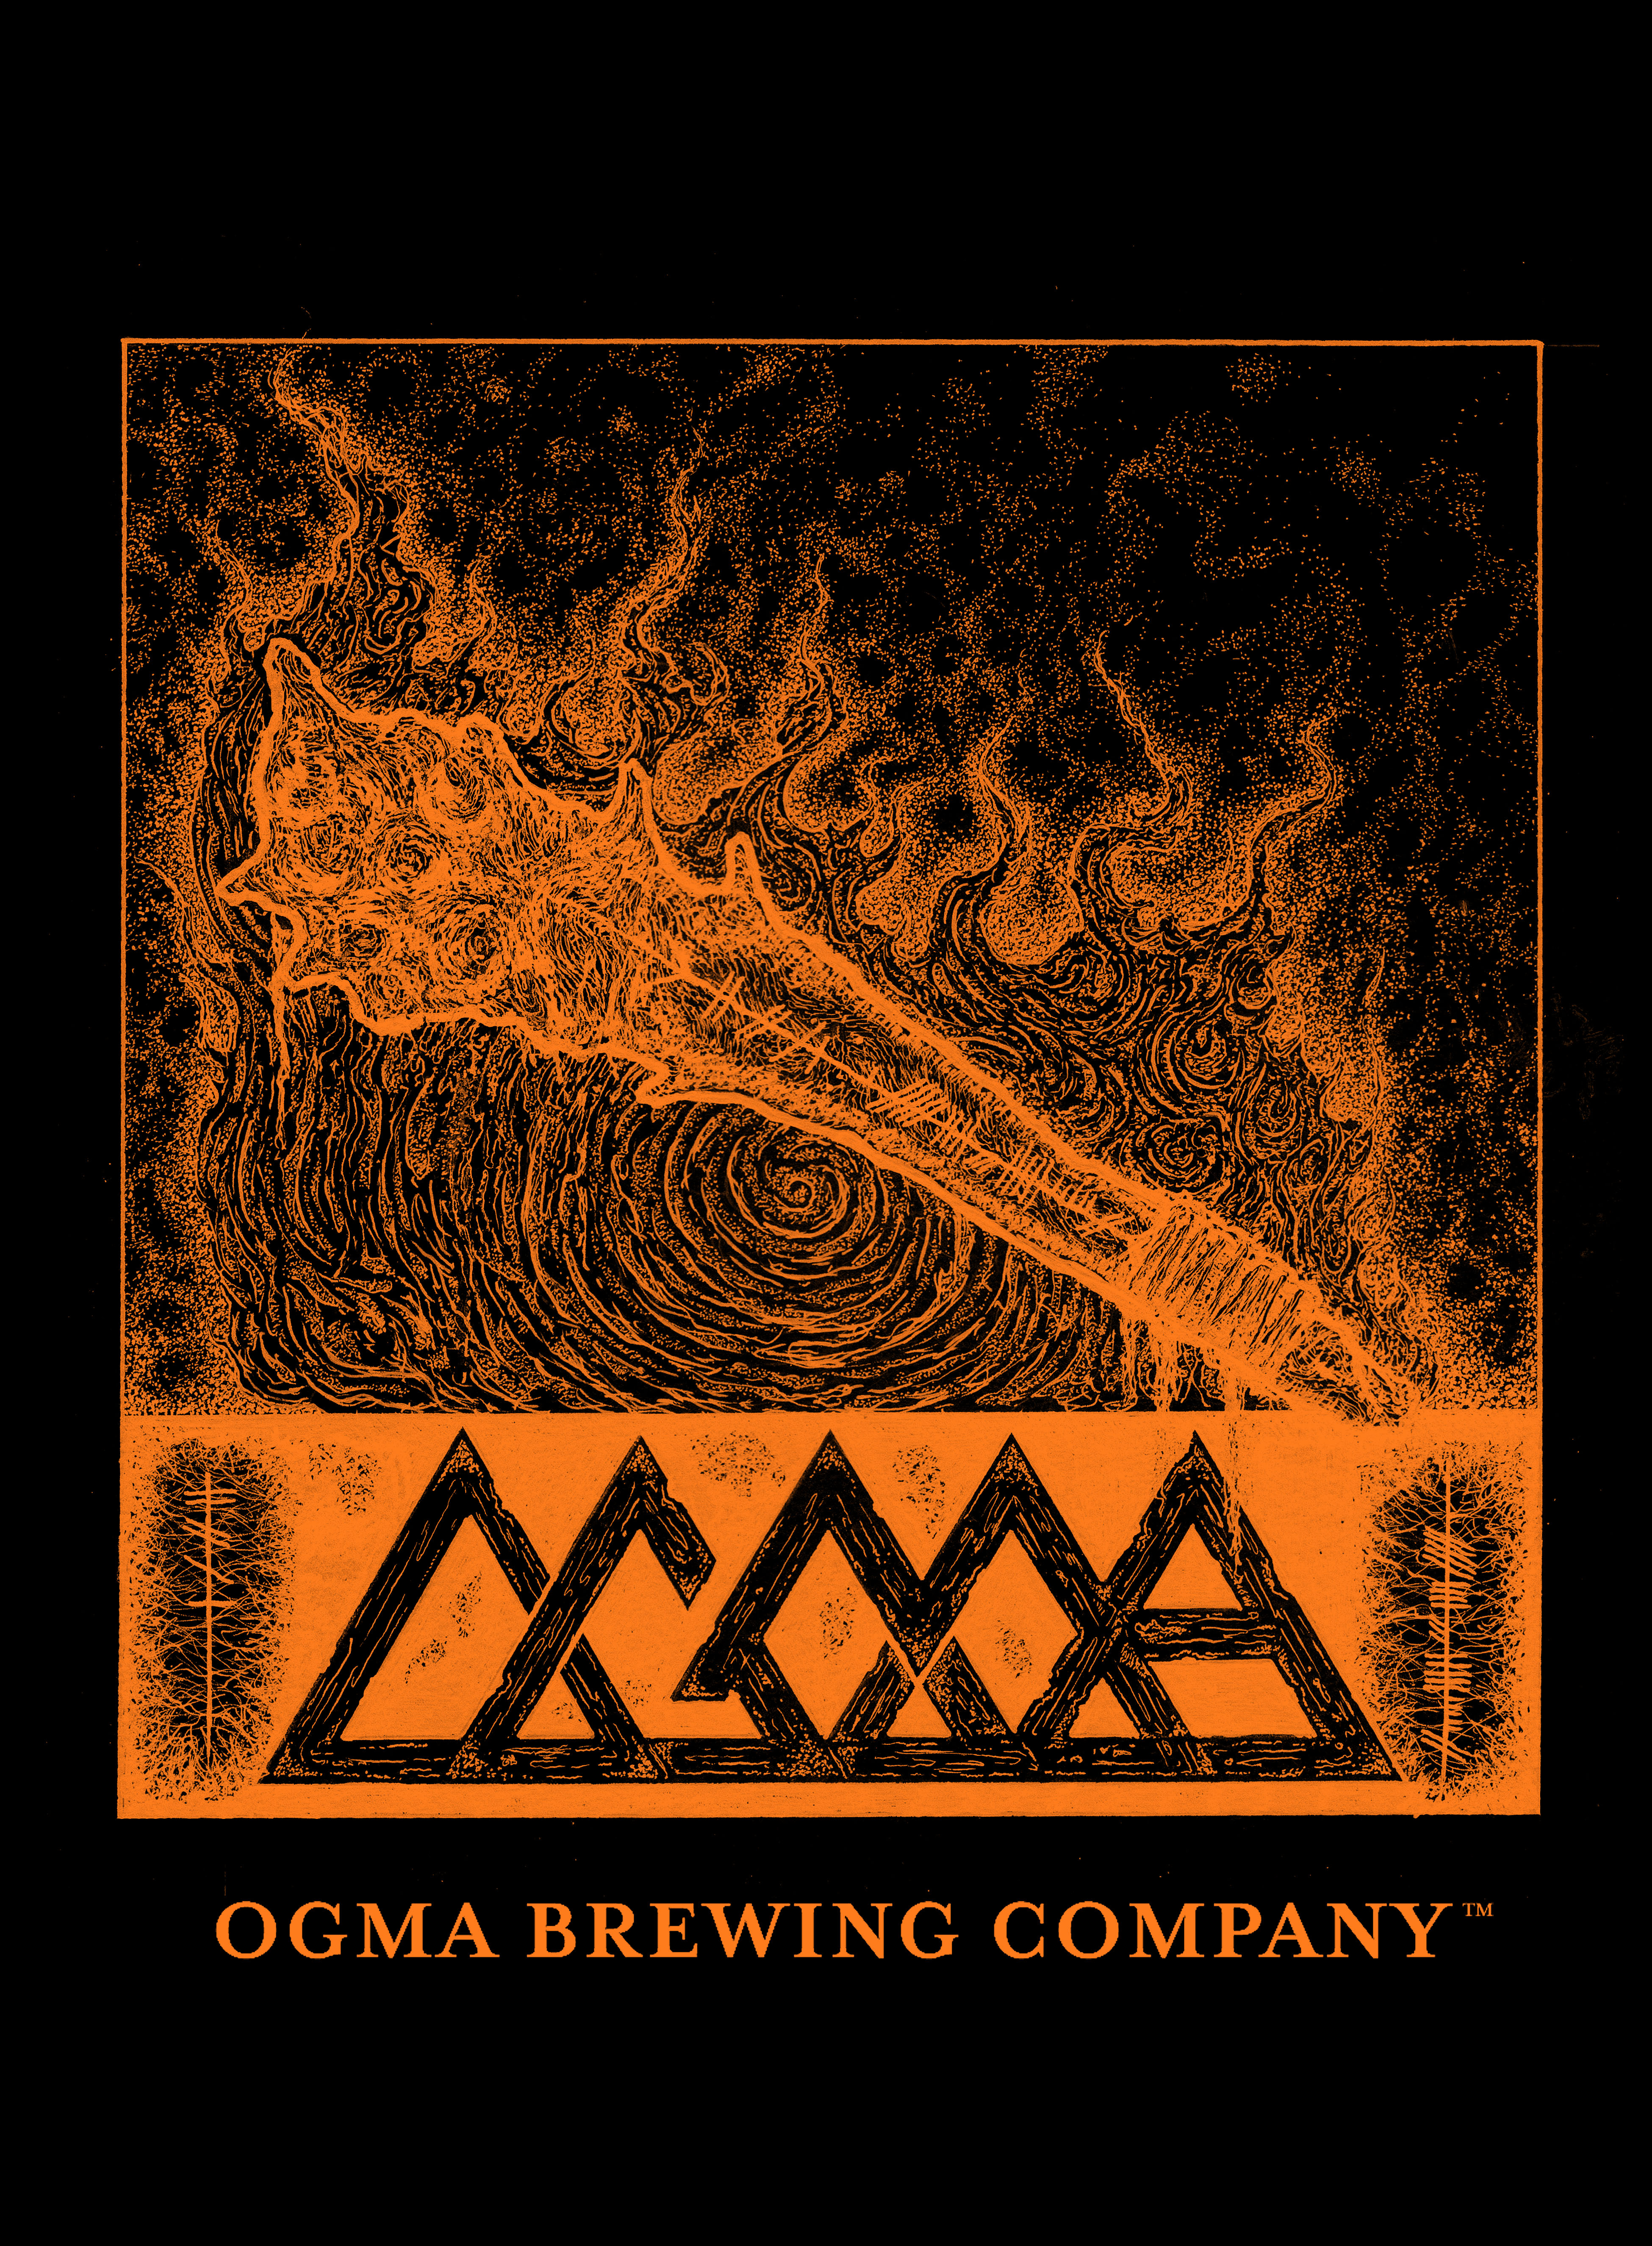 OGMA Brewing Company - Halloween Des